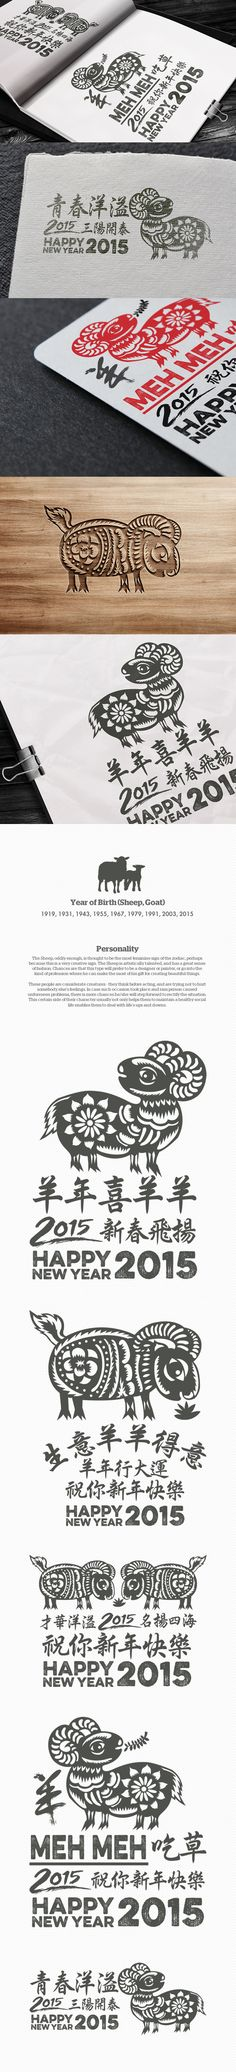 This is a Vector Illustrations of a #Chinese new year #2015 Year of the #sheep which include 5 different design. Paper cutting is a traditional art done by Chinese in #China.  This Chinese new year 2015 Year of the sheep can be easily used in Adobe Photoshop and illustrator, Fully layered, Smart Objects and it VECTOR !  #cny #chinesenewyear #yearofthegoat #goat #sheep #ram #vector #cny2015